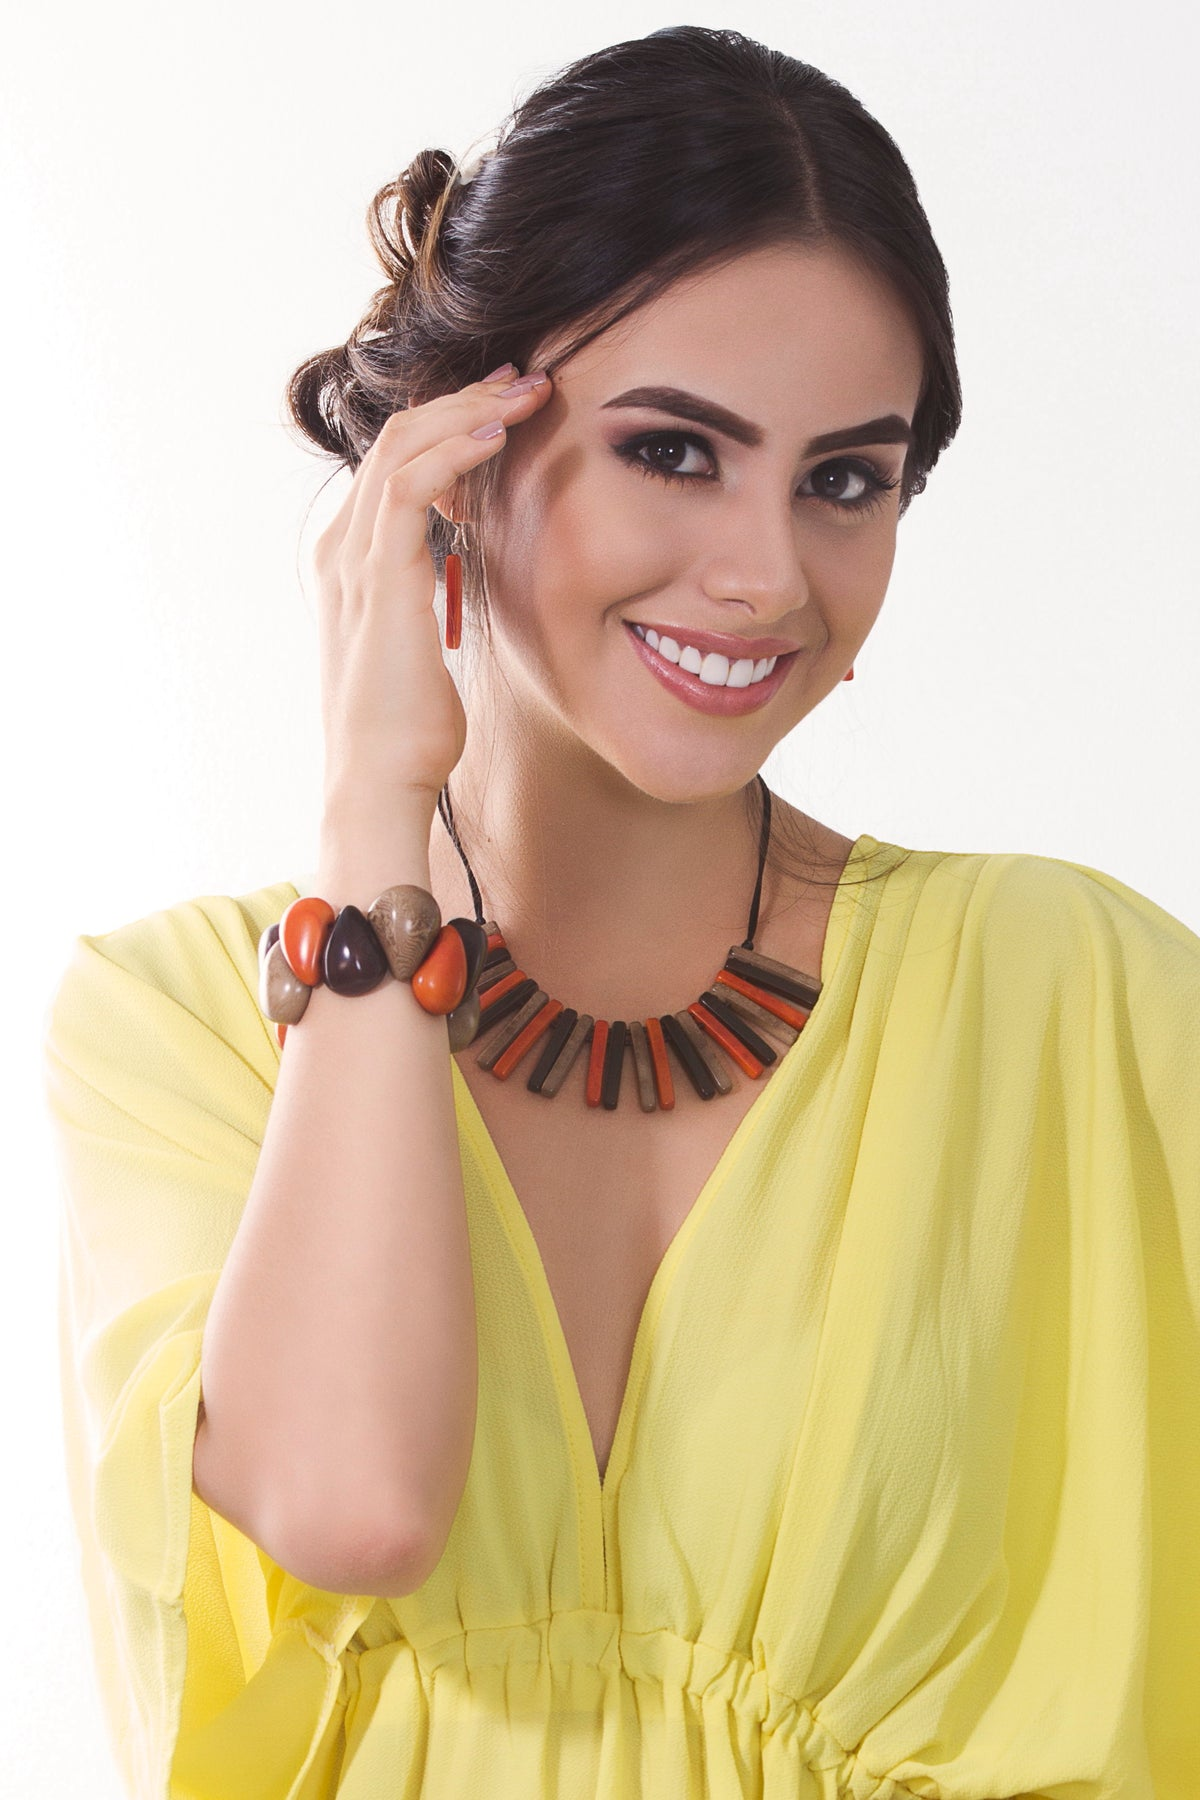 Sofia necklace - Orange & Brown tones